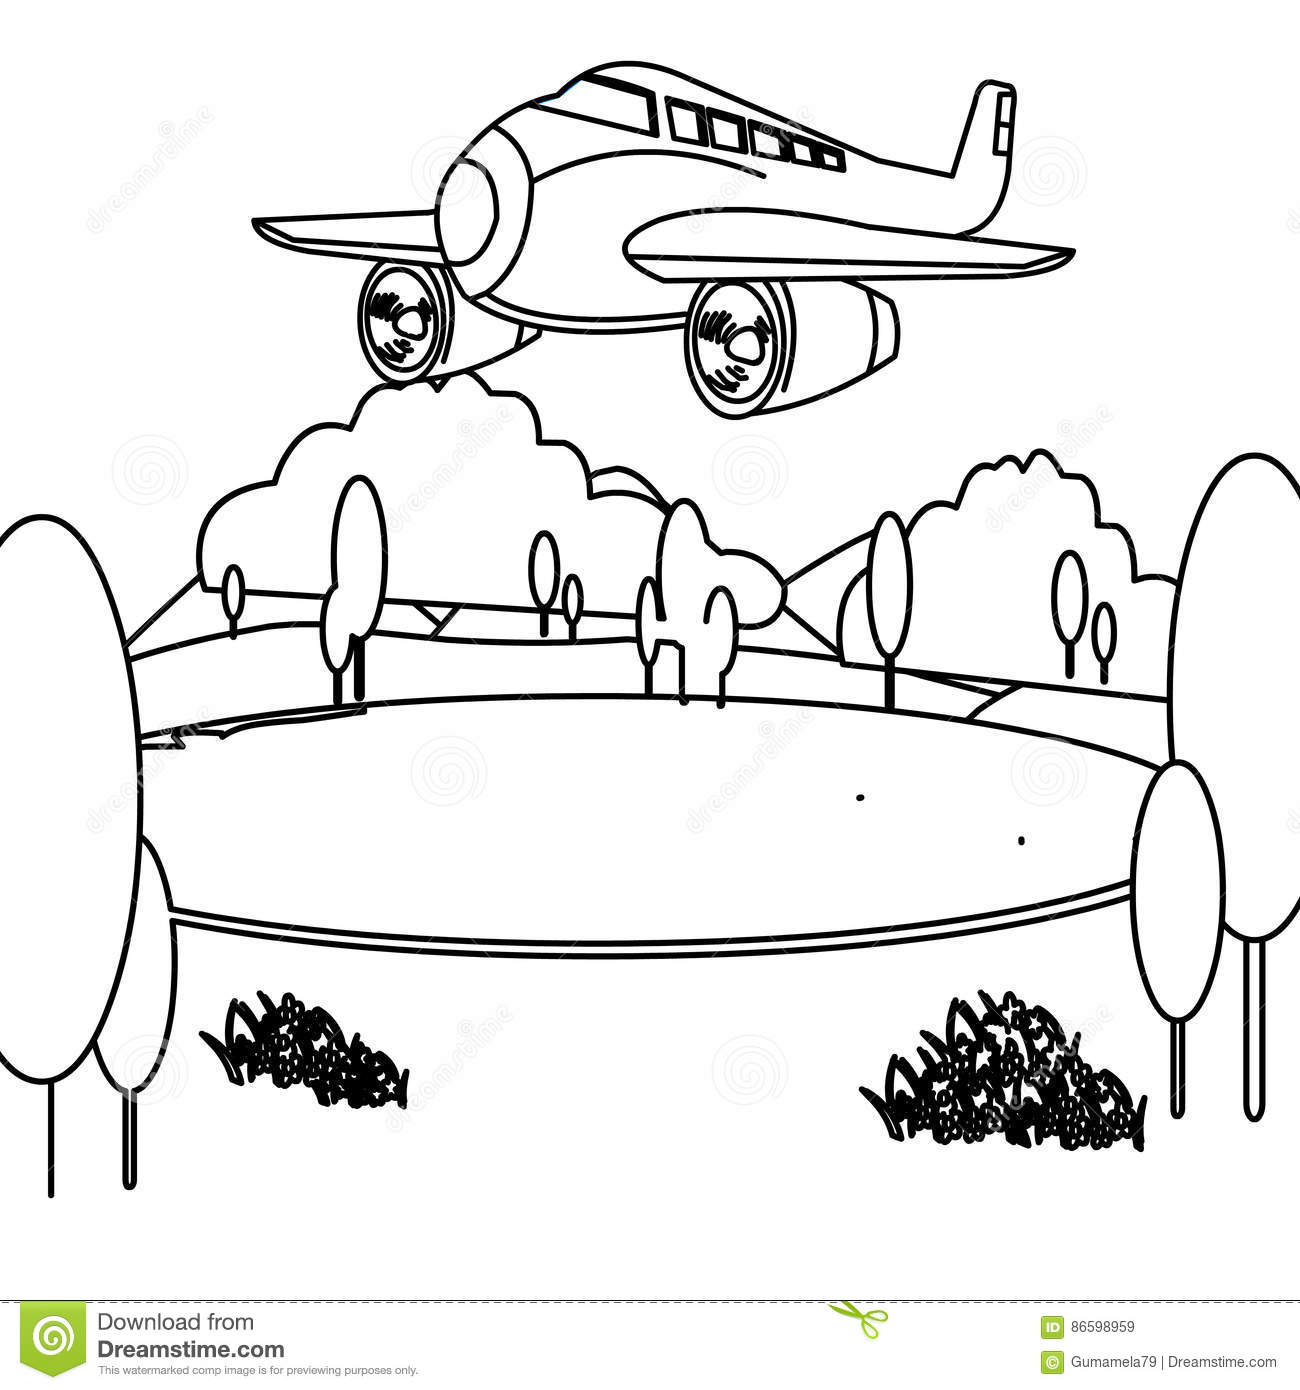 Jet plane coloring page stock illustration. Illustration of cute ...